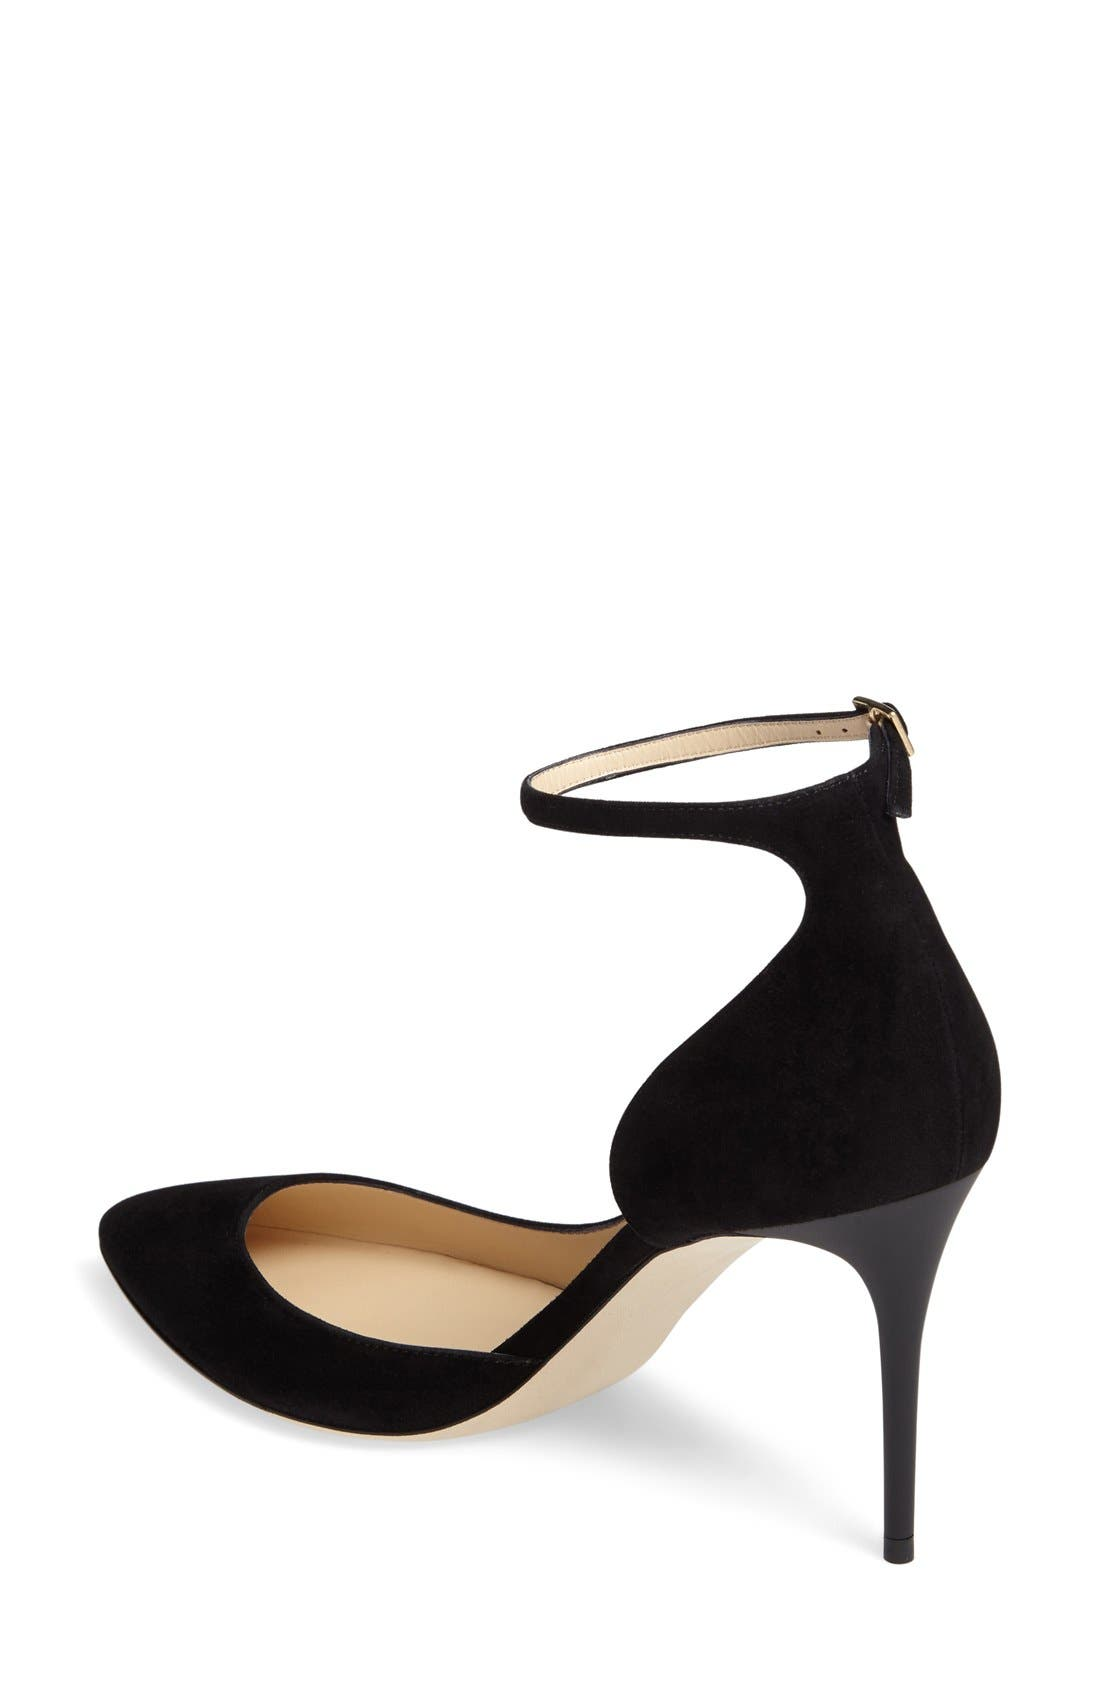 'Lucy' Half d'Orsay Pointy Toe Pump,                             Alternate thumbnail 19, color,